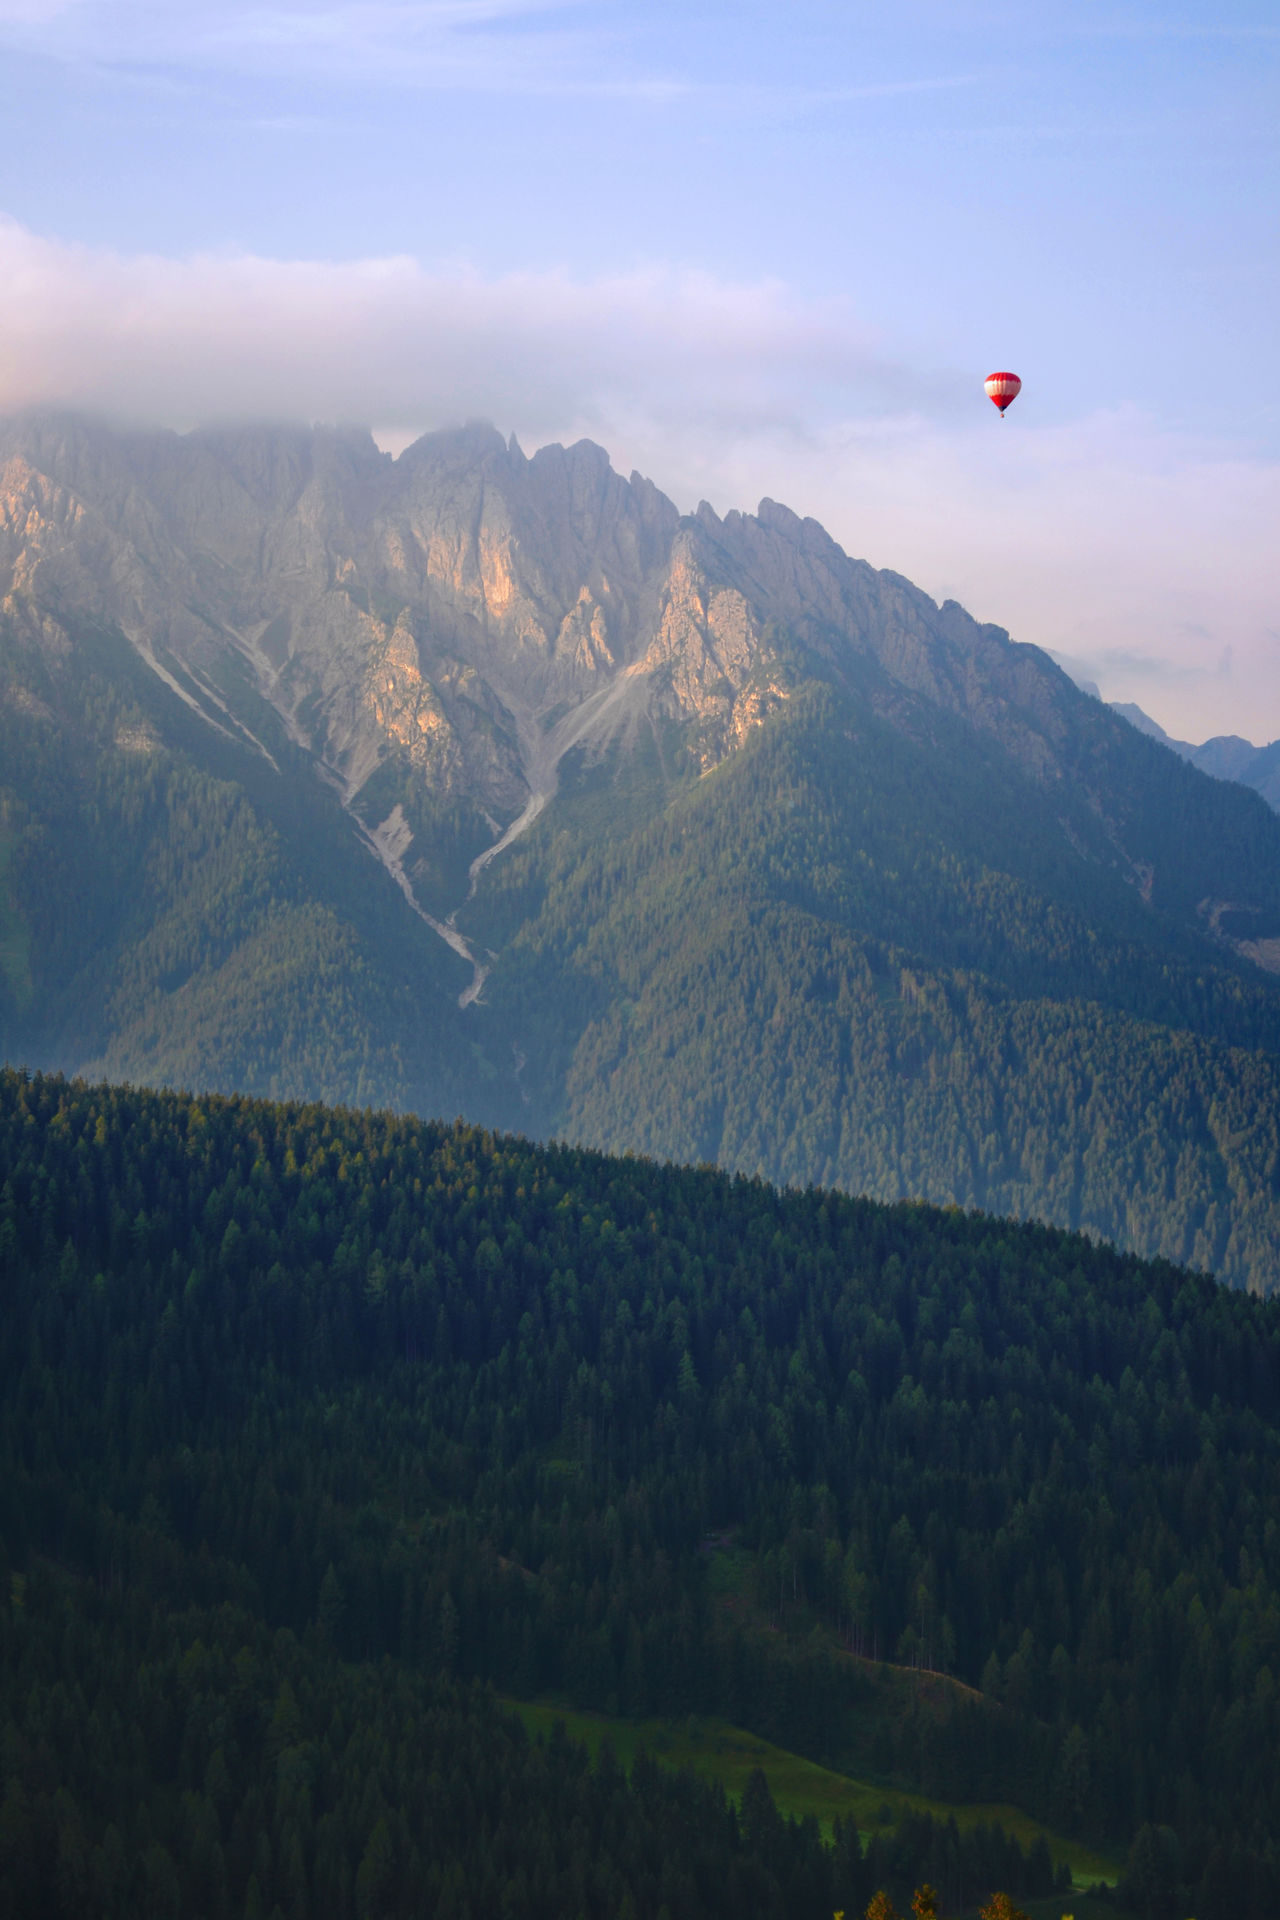 Adventure Beauty In Nature Cloud - Sky Day Flying Hot-air Balloon Idyllic Landscape Lanscapes With Whitewall Mid-air Mountain Mountain Range Nature Non-urban Scene Outdoors Remote Scenics Sky Tranquil Scene Tranquility Transportation Travel